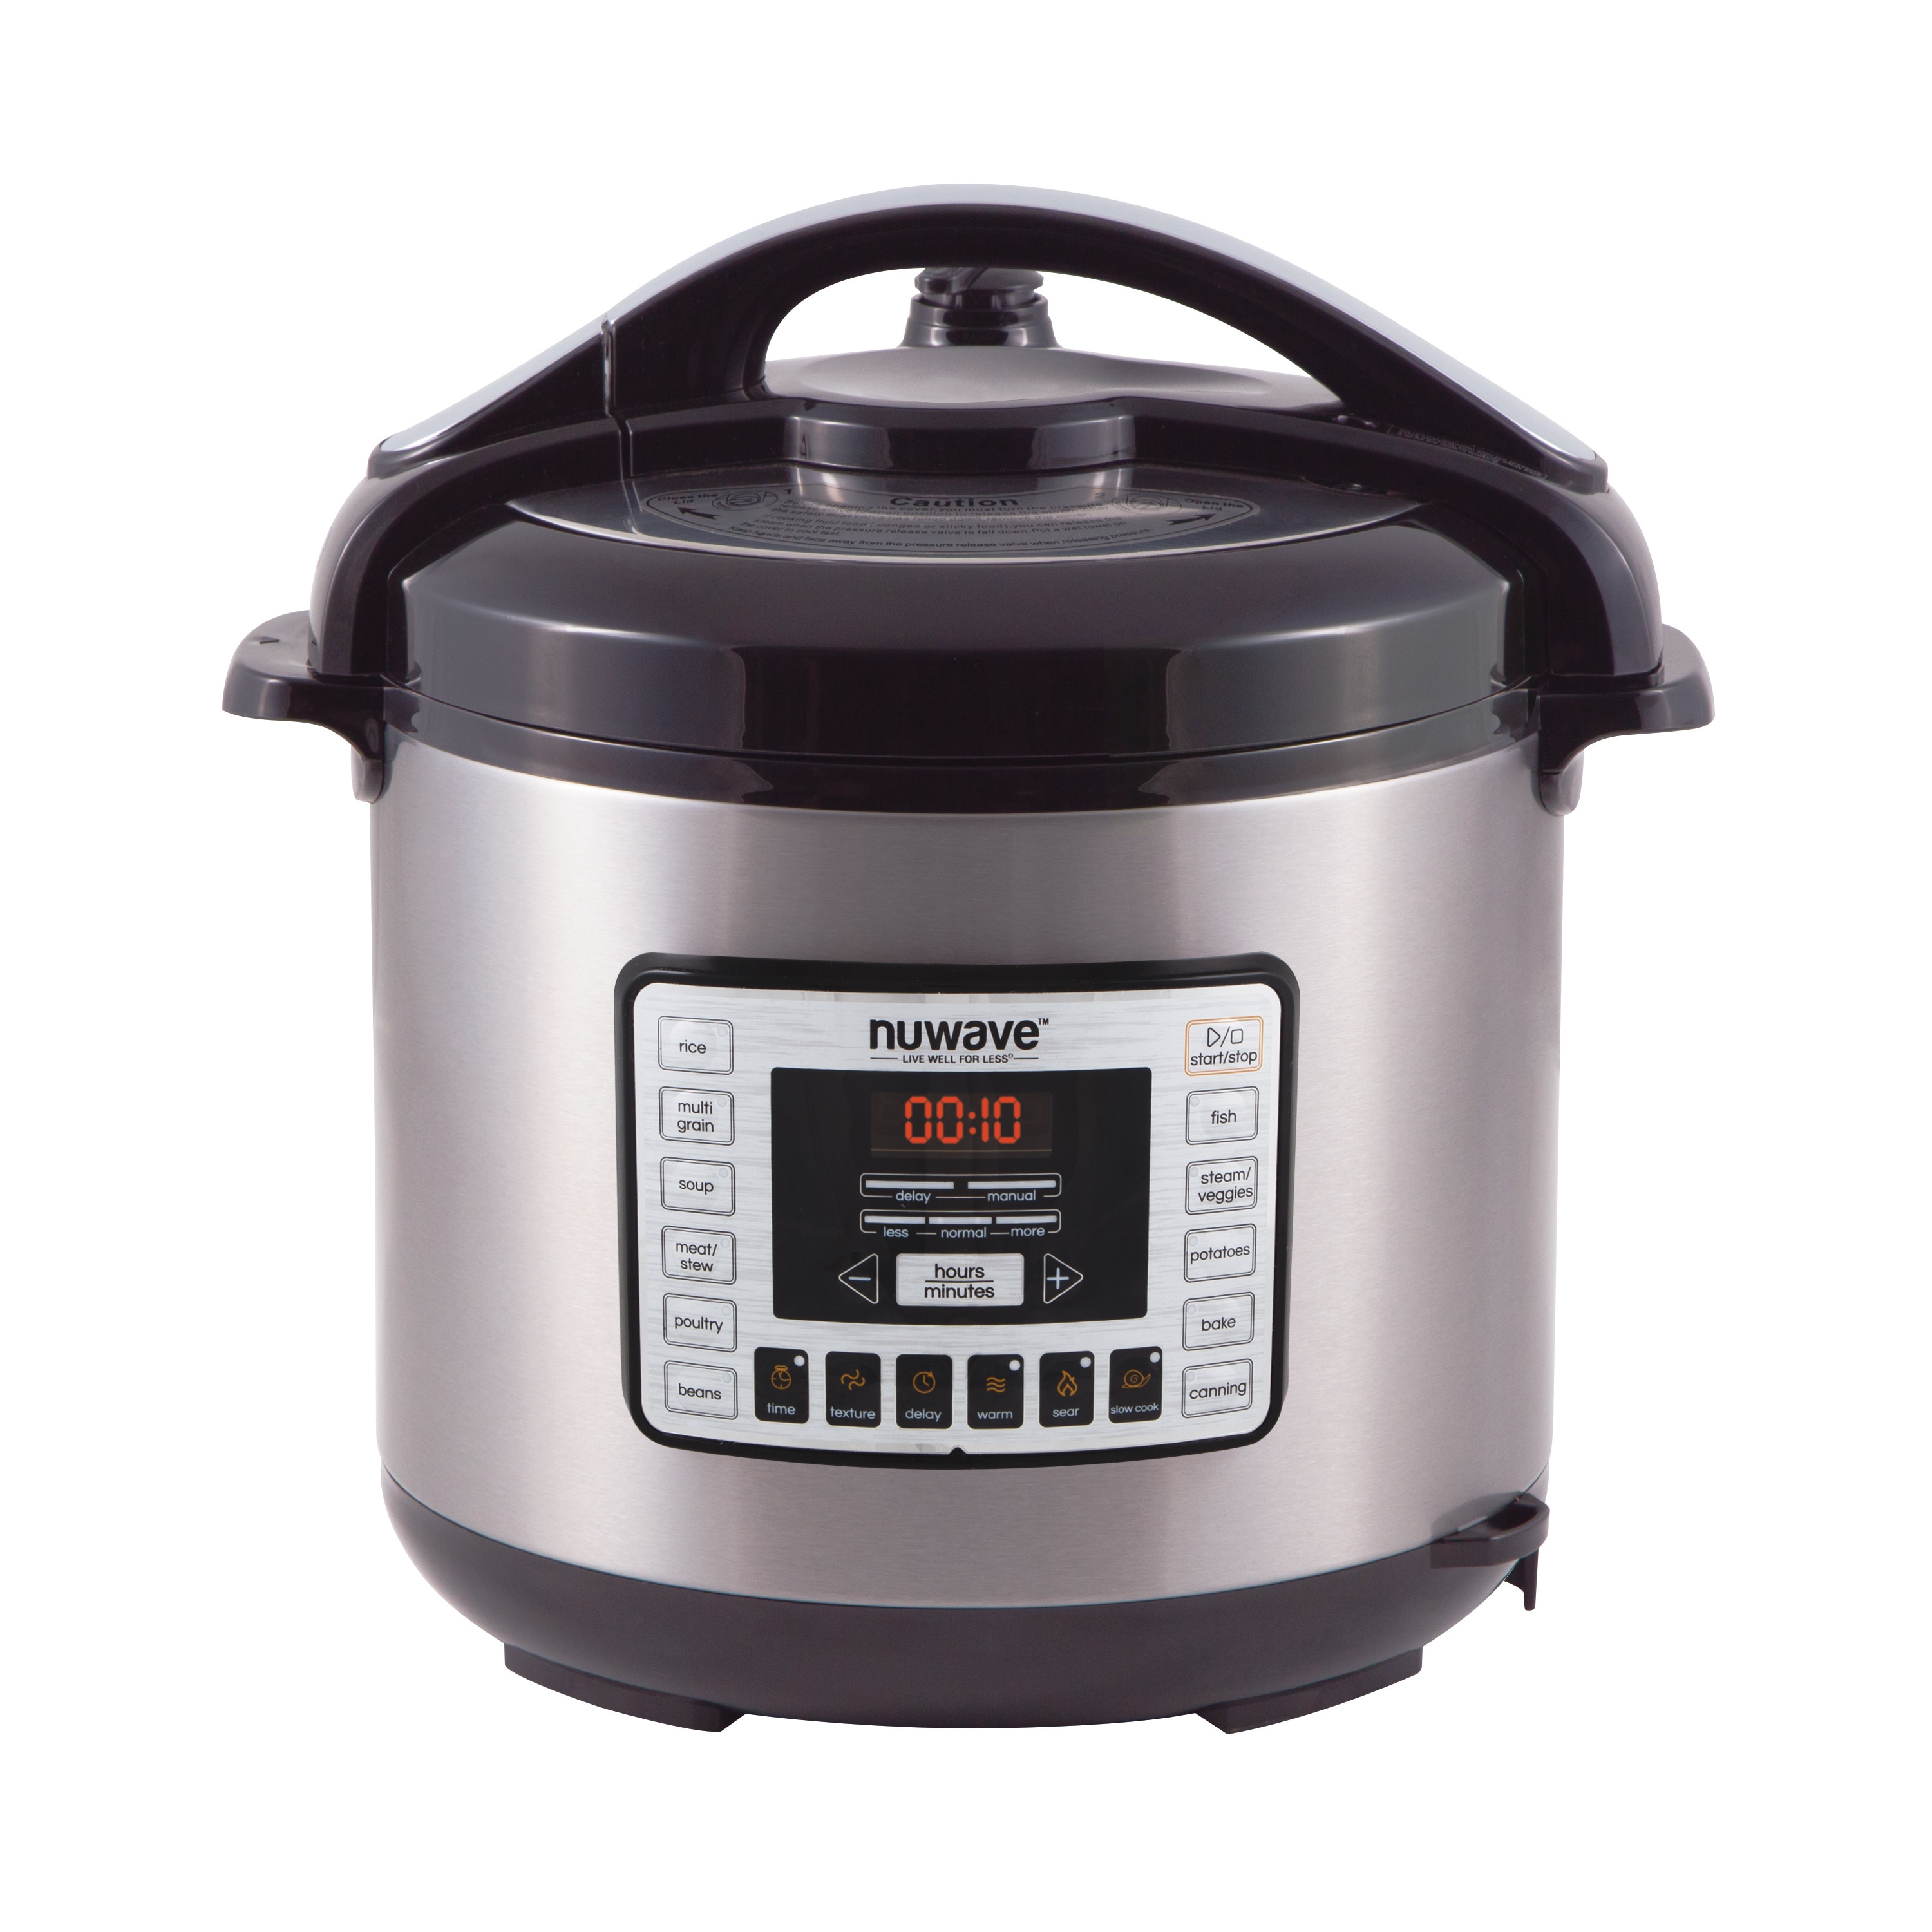 NuWave 33201 8 Qt Electric Pressure Cooker